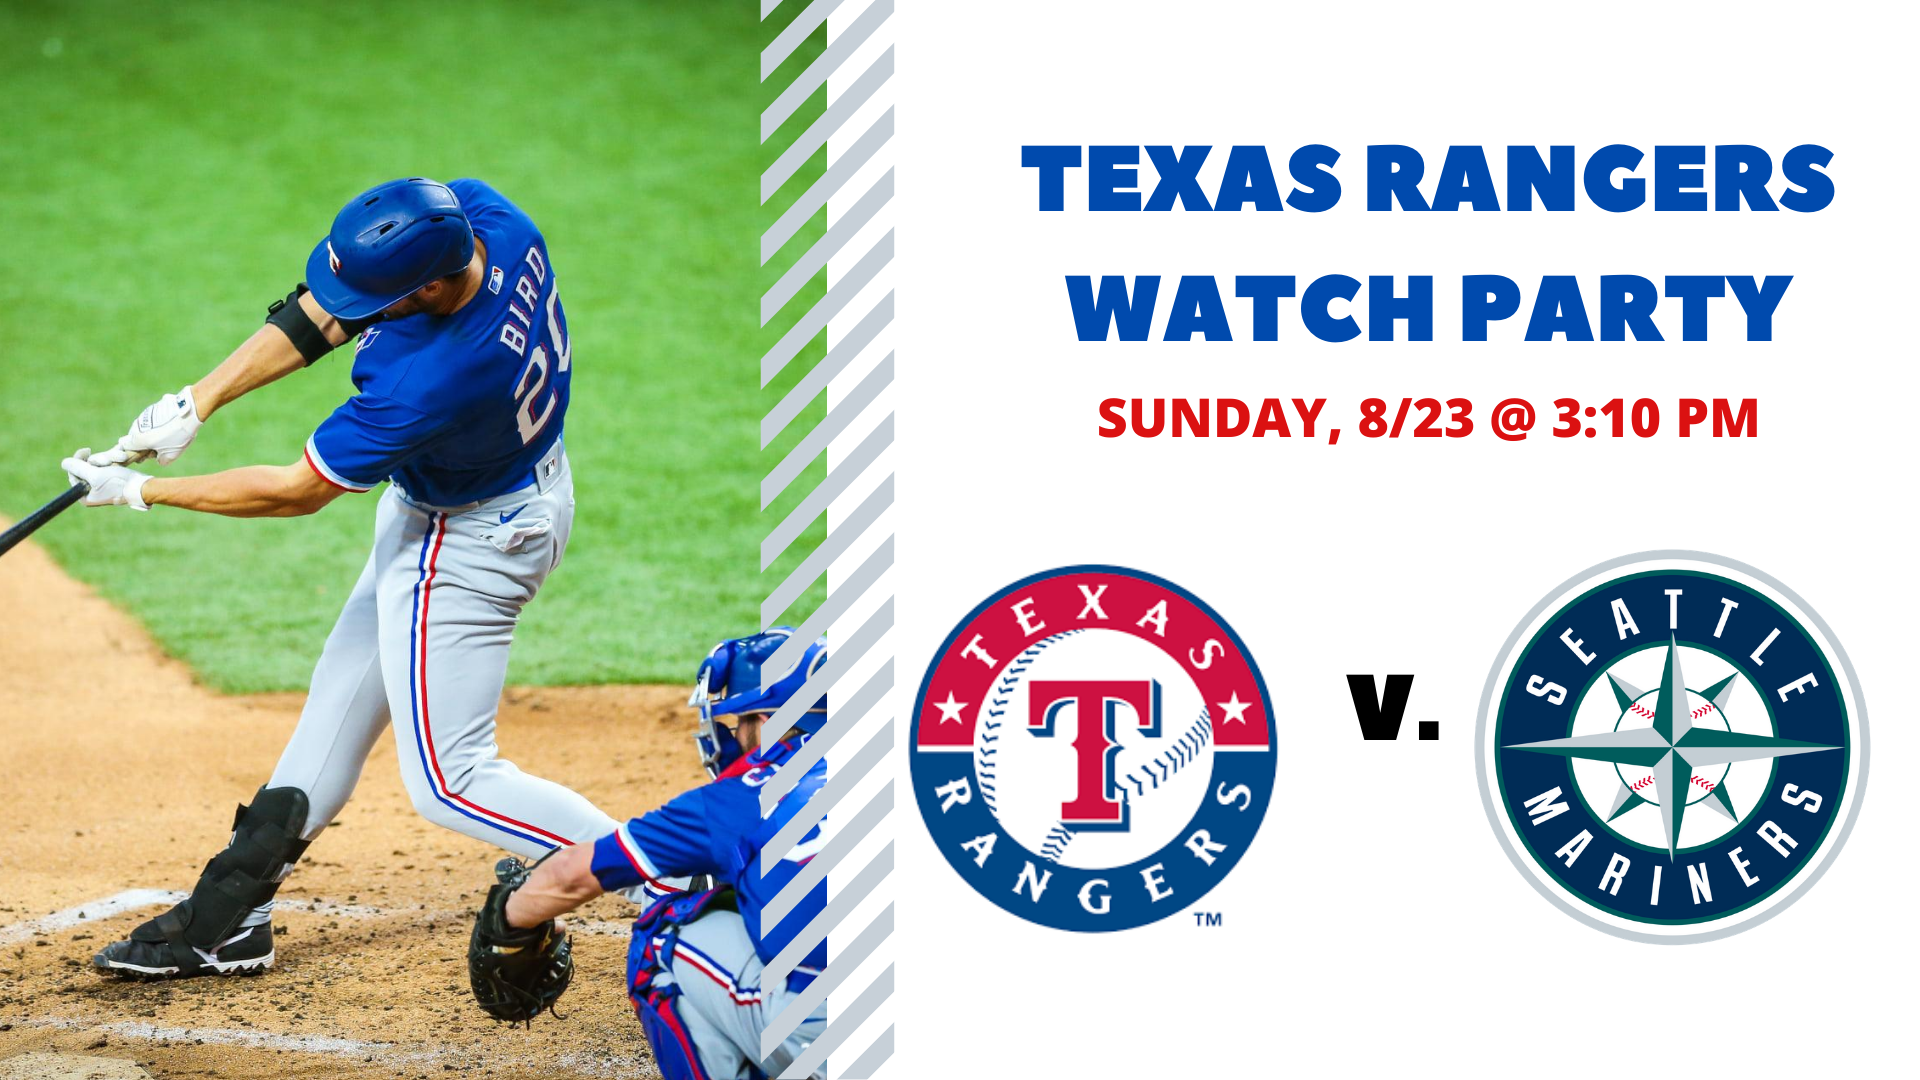 Promo image of Rangers v. Mariners | Free Watch Party